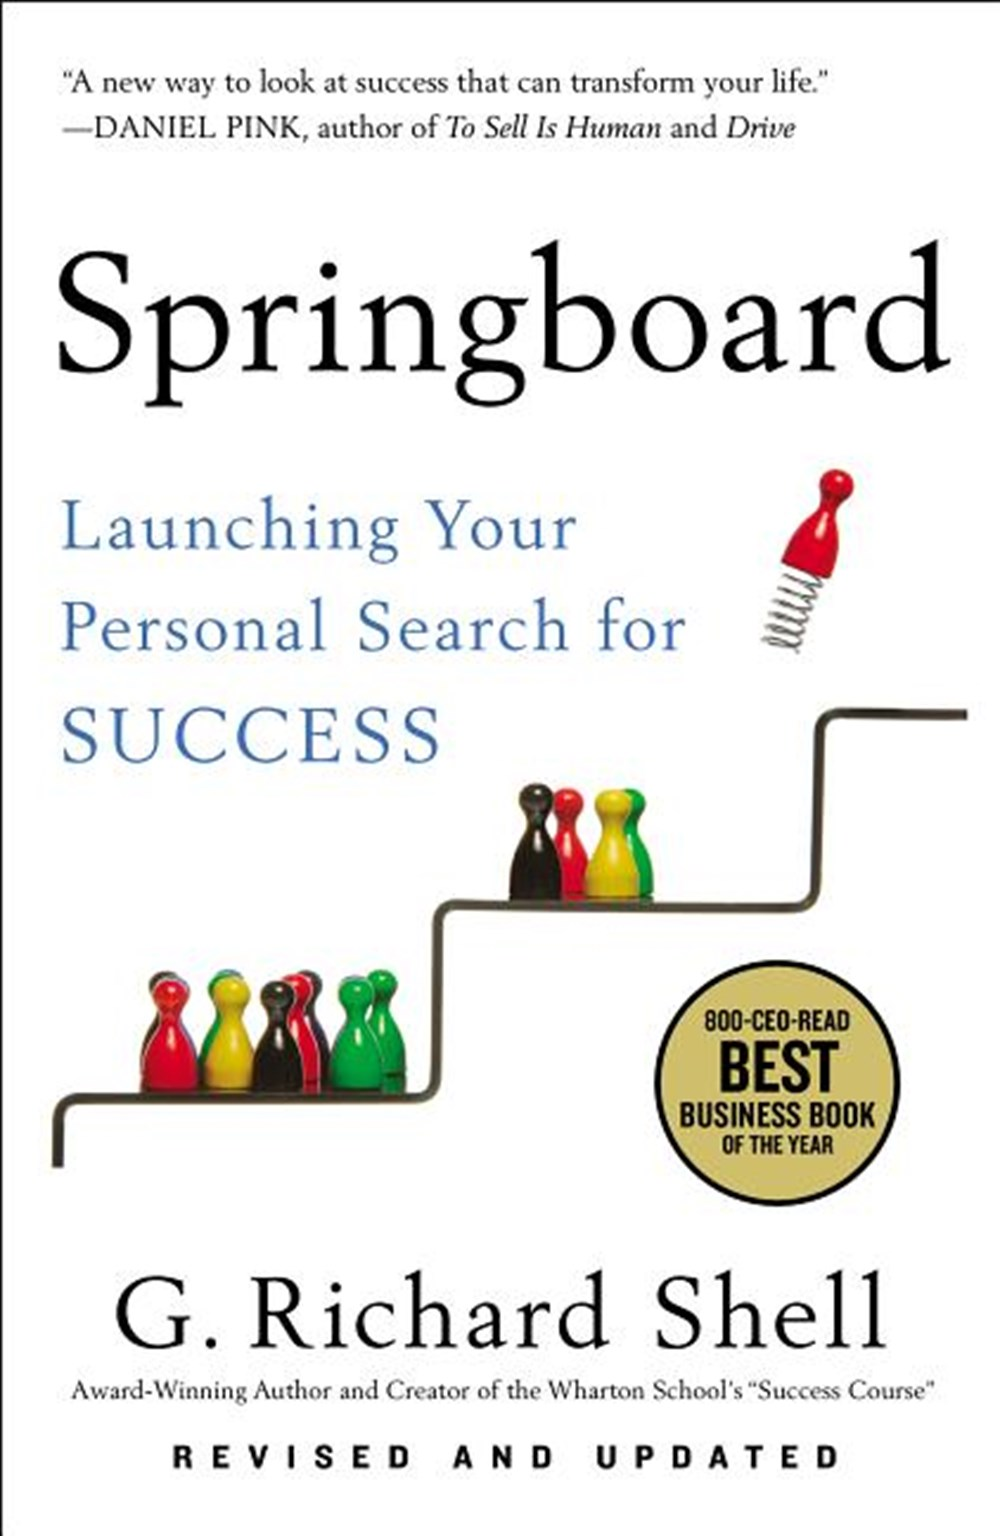 Springboard Launching Your Personal Search for Success